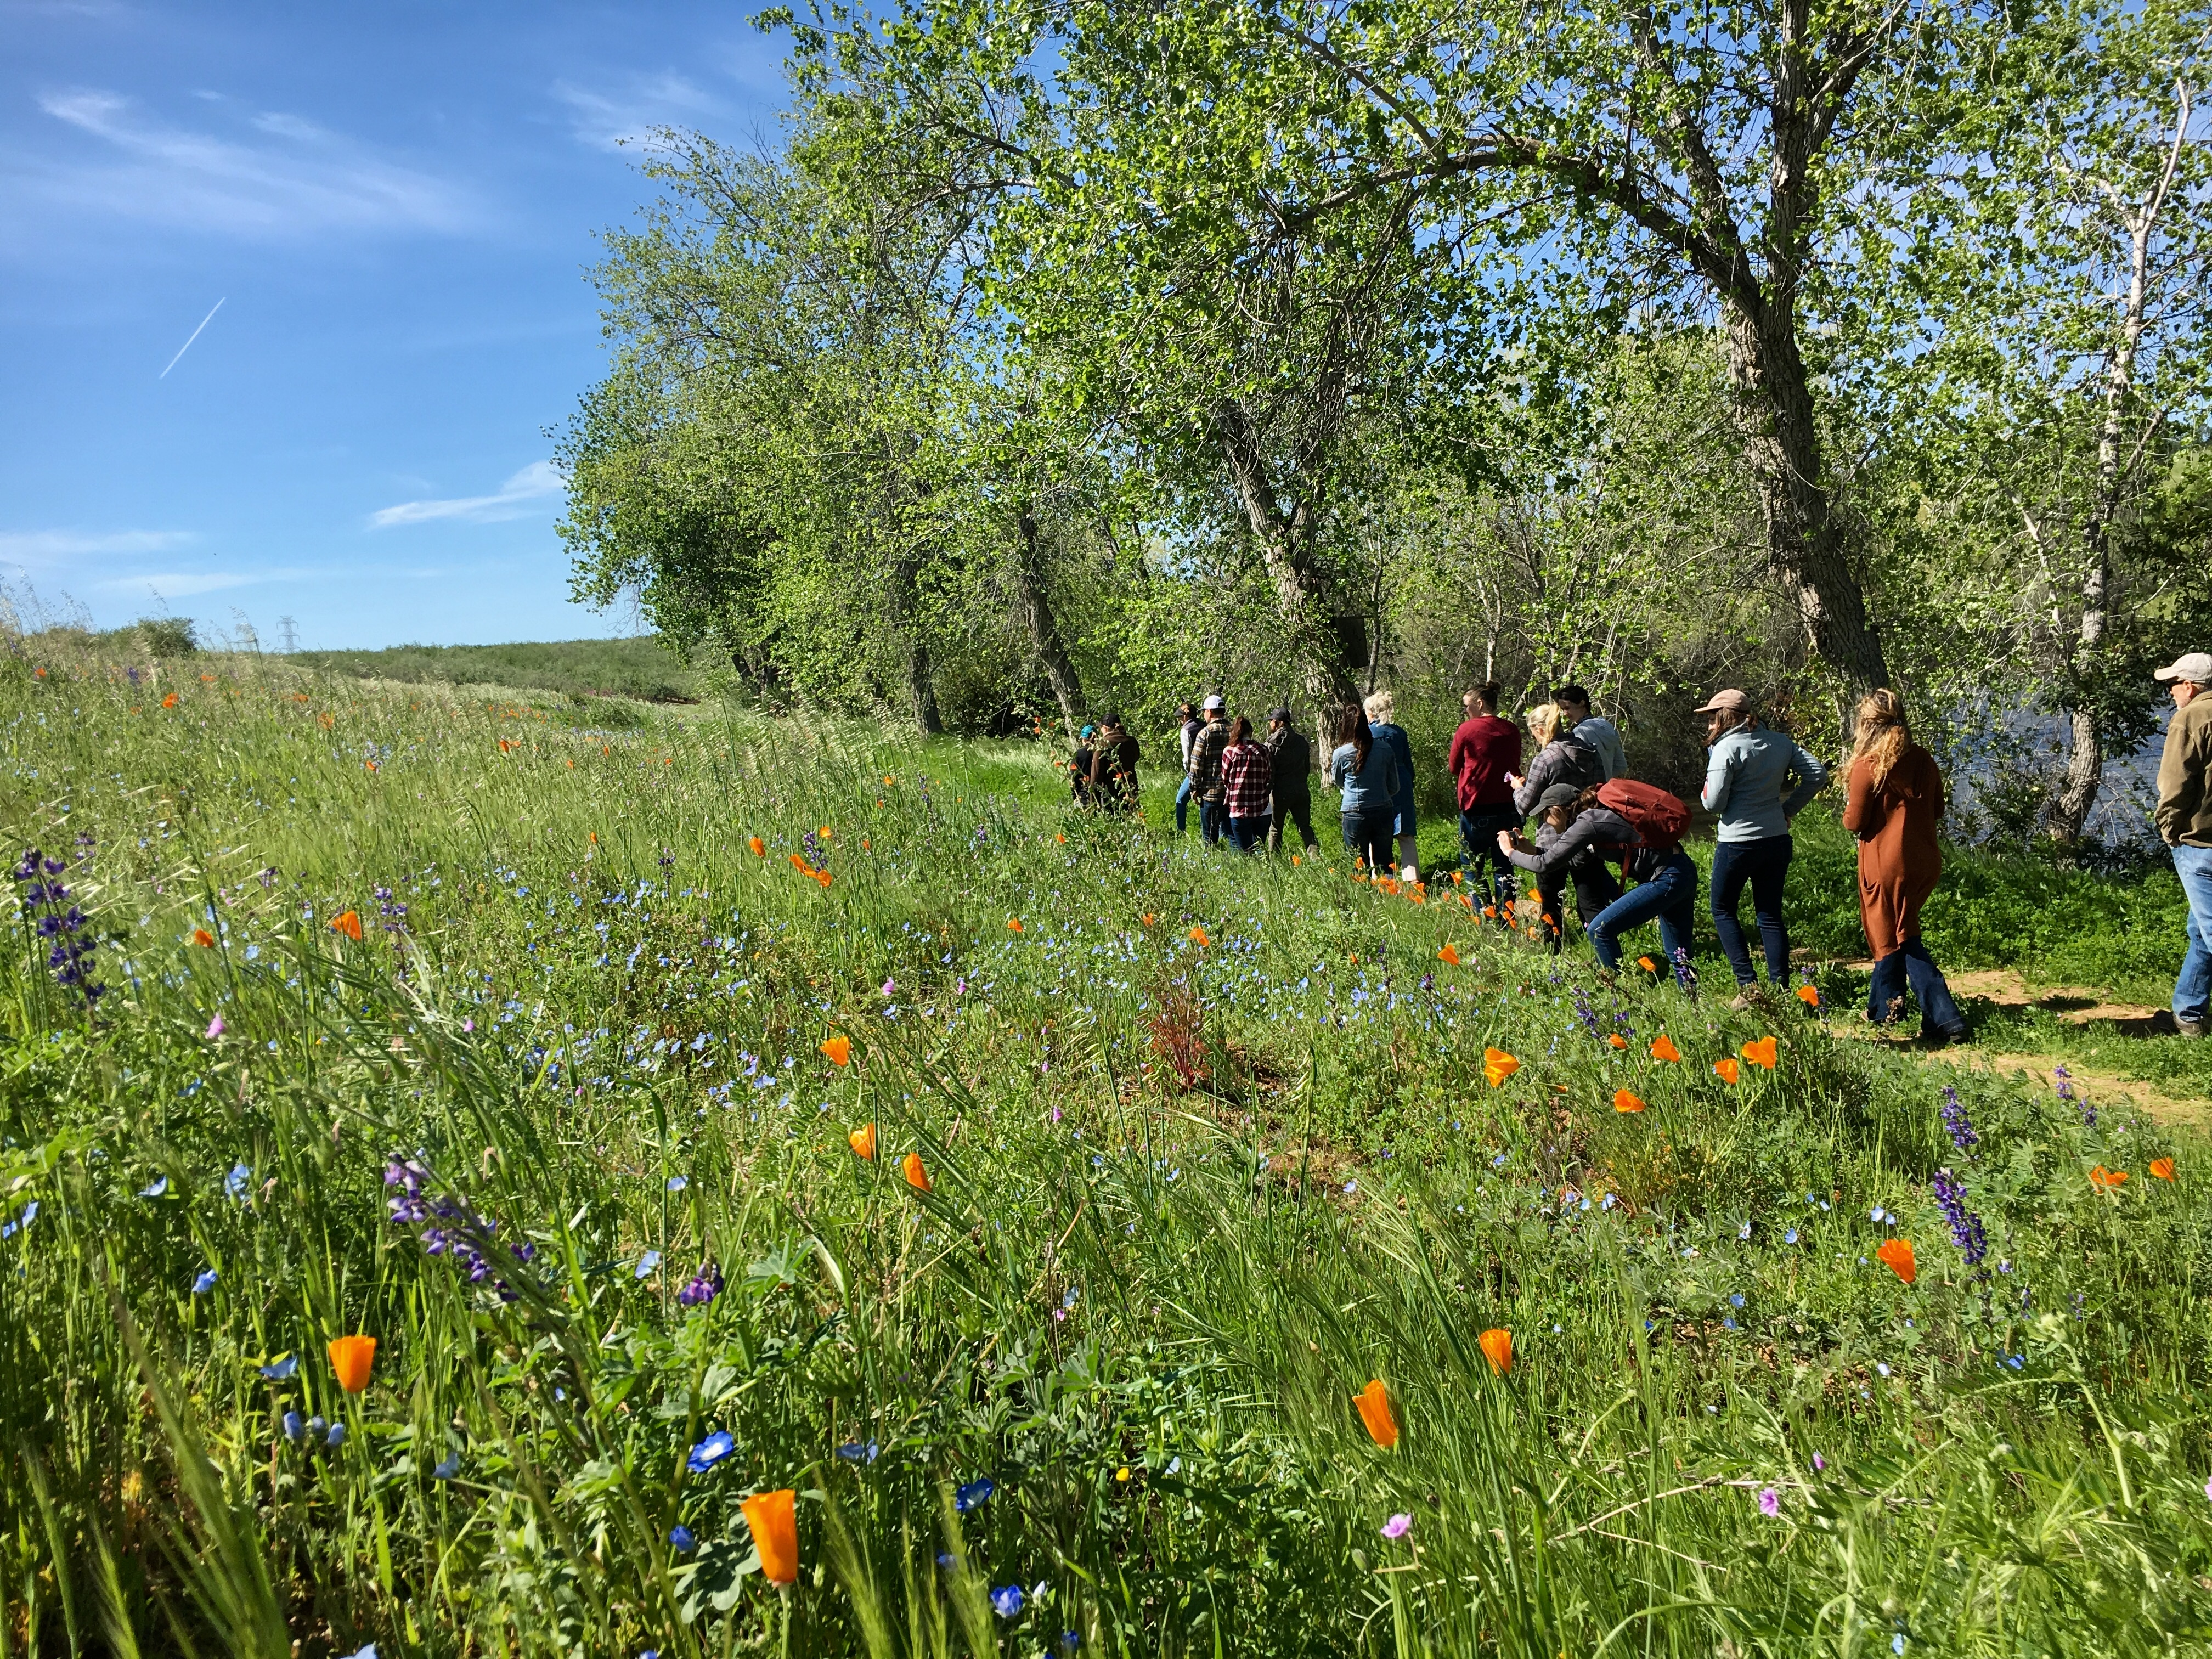 At the base of a round hill studded with colorful flowers, a group of people walks in single file.